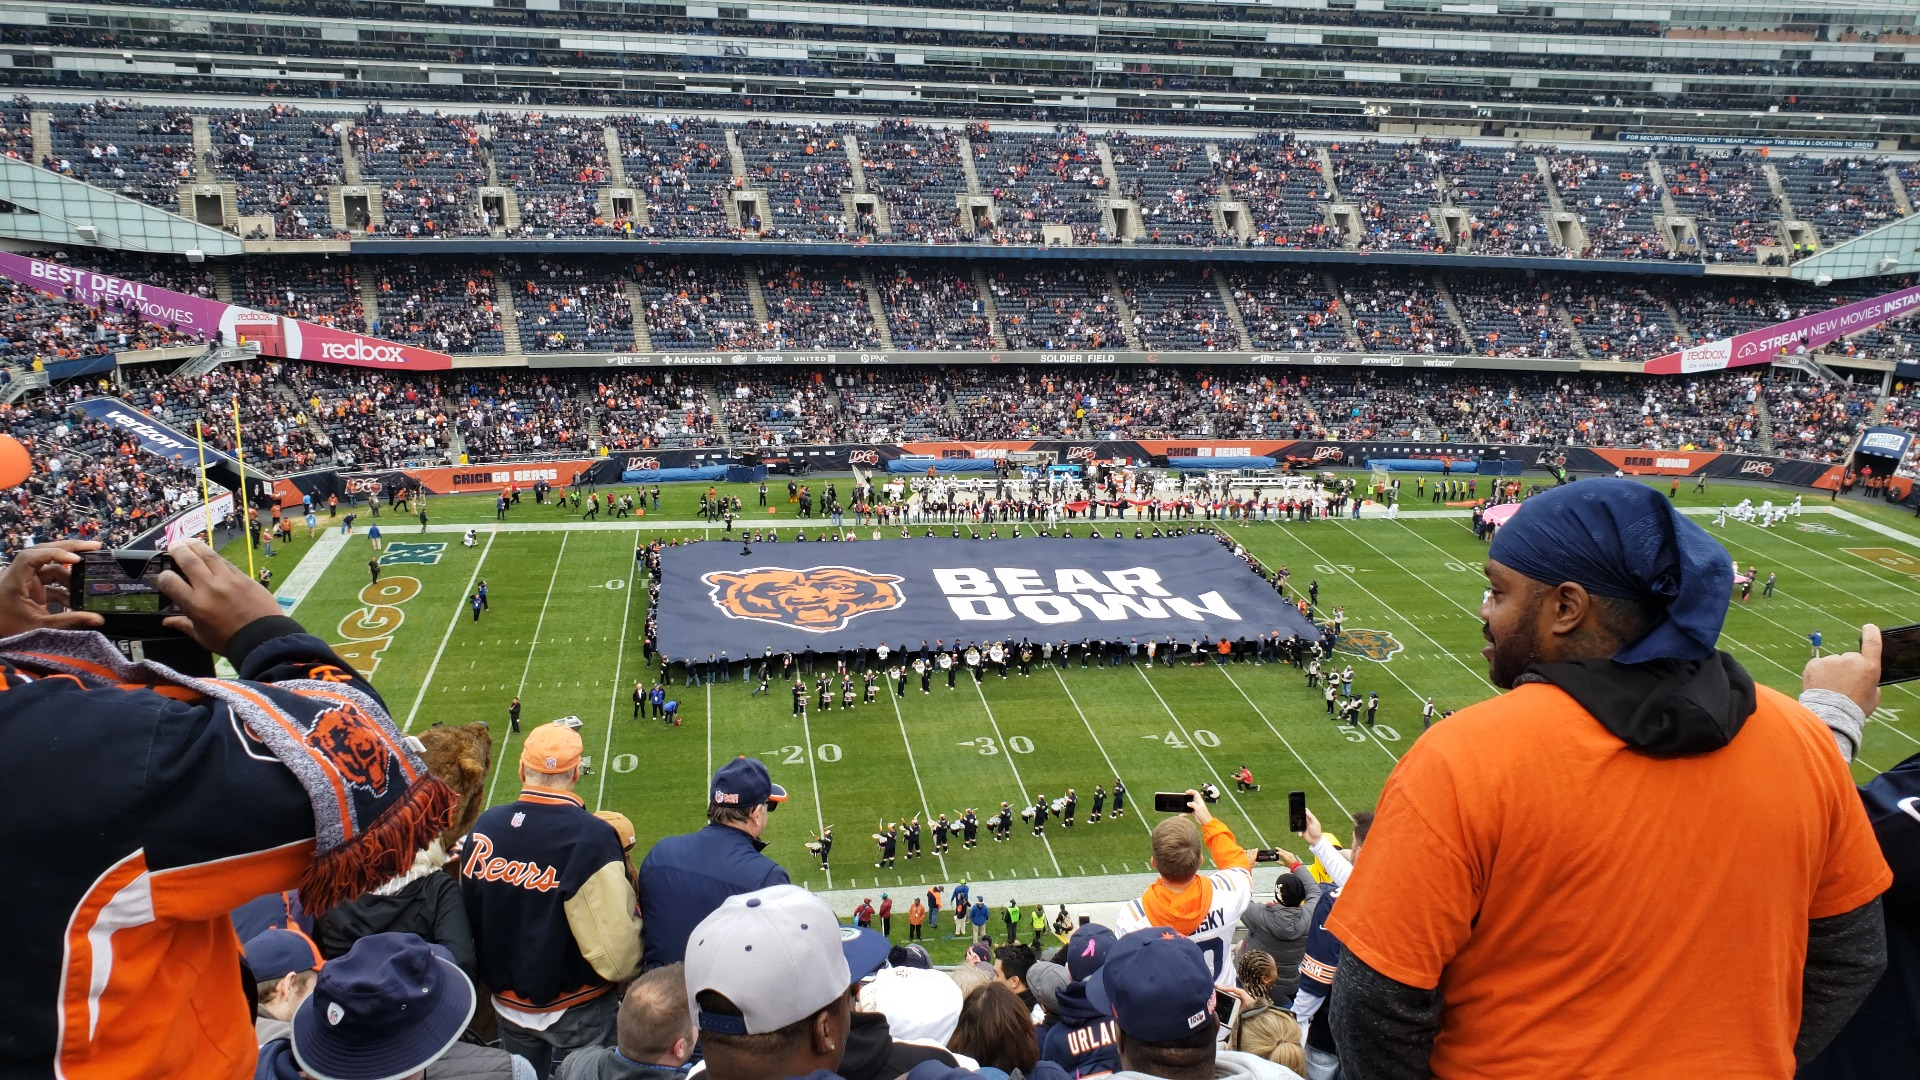 Soldier Field Section 440 Row 12 Seat 14